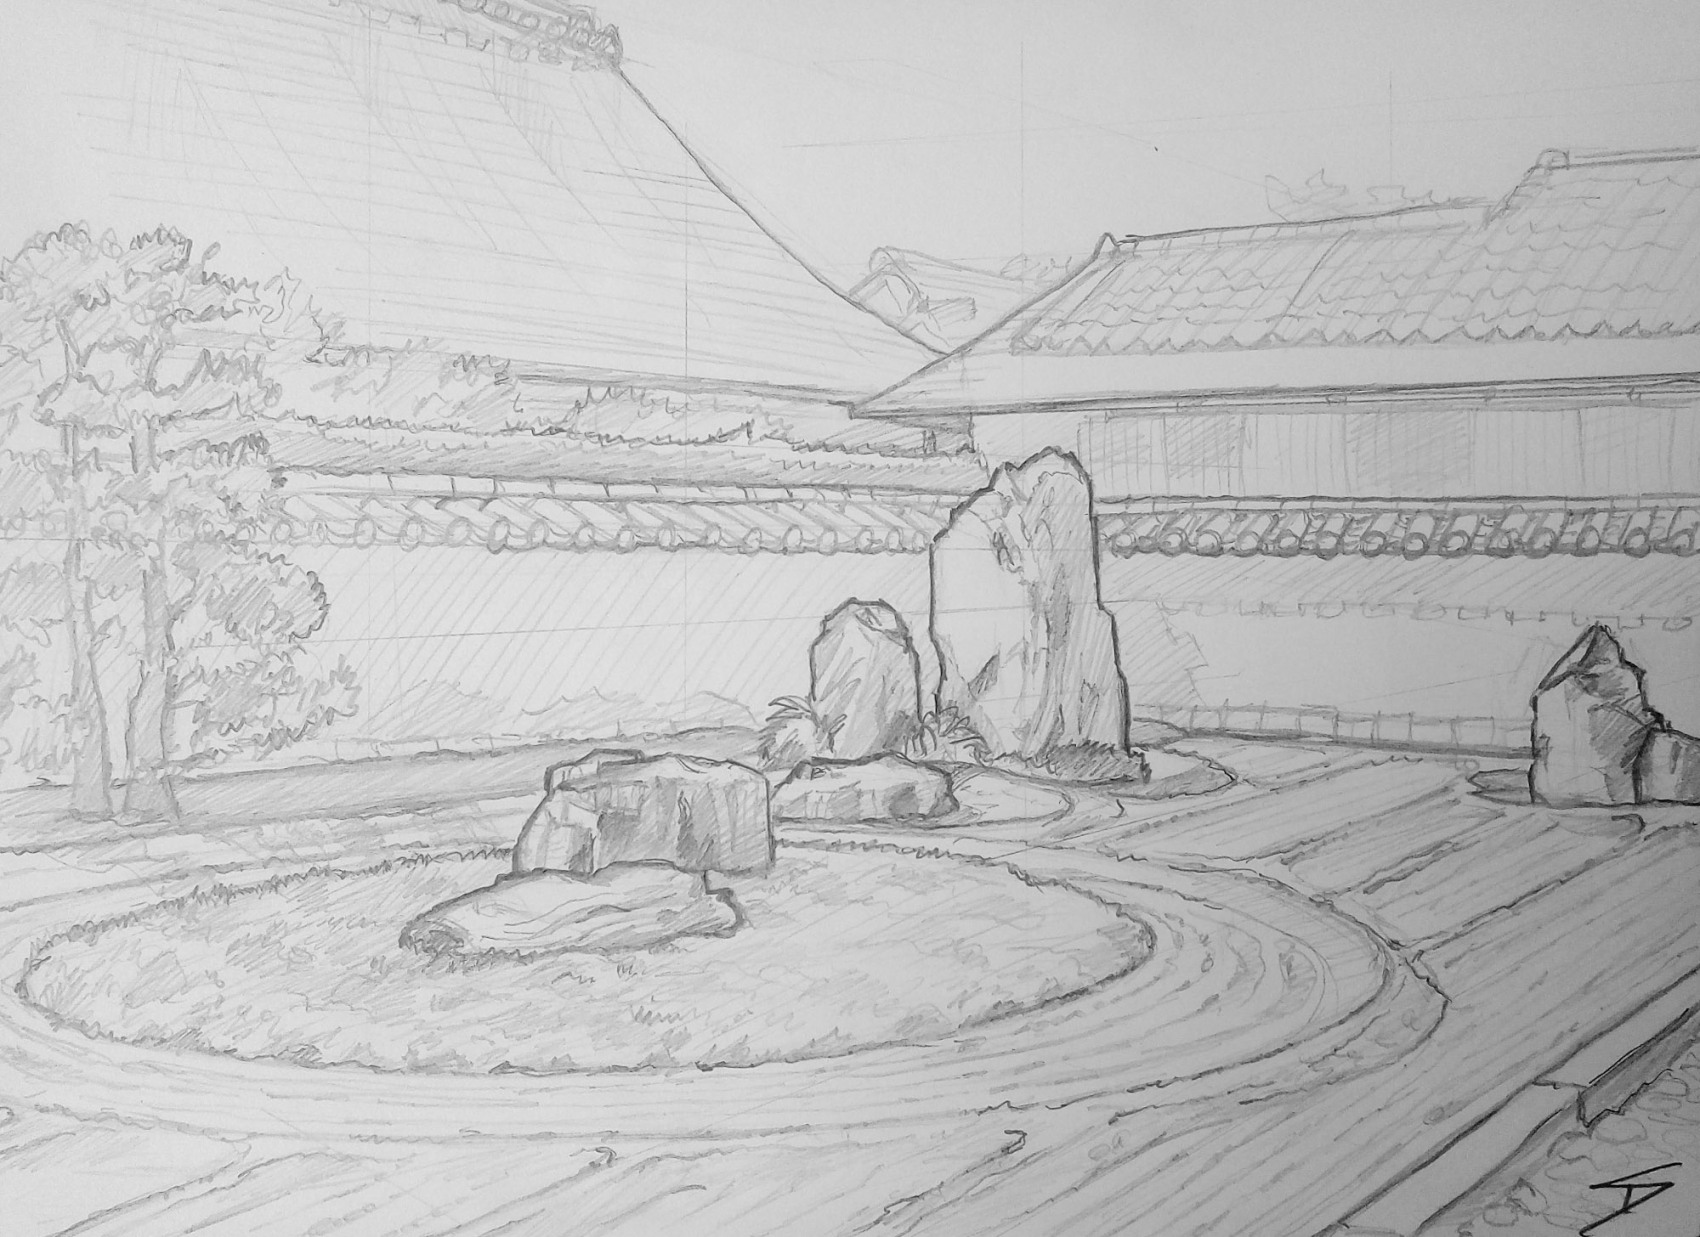 Urban art - Murasakino, Kyoto, Japan. 'Ryogen-in Temple.' The centre rock of the Isshidan garden represents Mount Horai, and the other collections of rocks represent Crane Island and Tortoise Island, with the white combed sand standing in for the ocean. sketchbookexplorer.com @davidasutton @sketchbookexplorer Facebook.com/davidanthonysutton #japan #kyoto #kitaward #daitokuji #ryogenintemple #travel #travelblog #art #sketching #cheeryblossom #cherryblossomseason